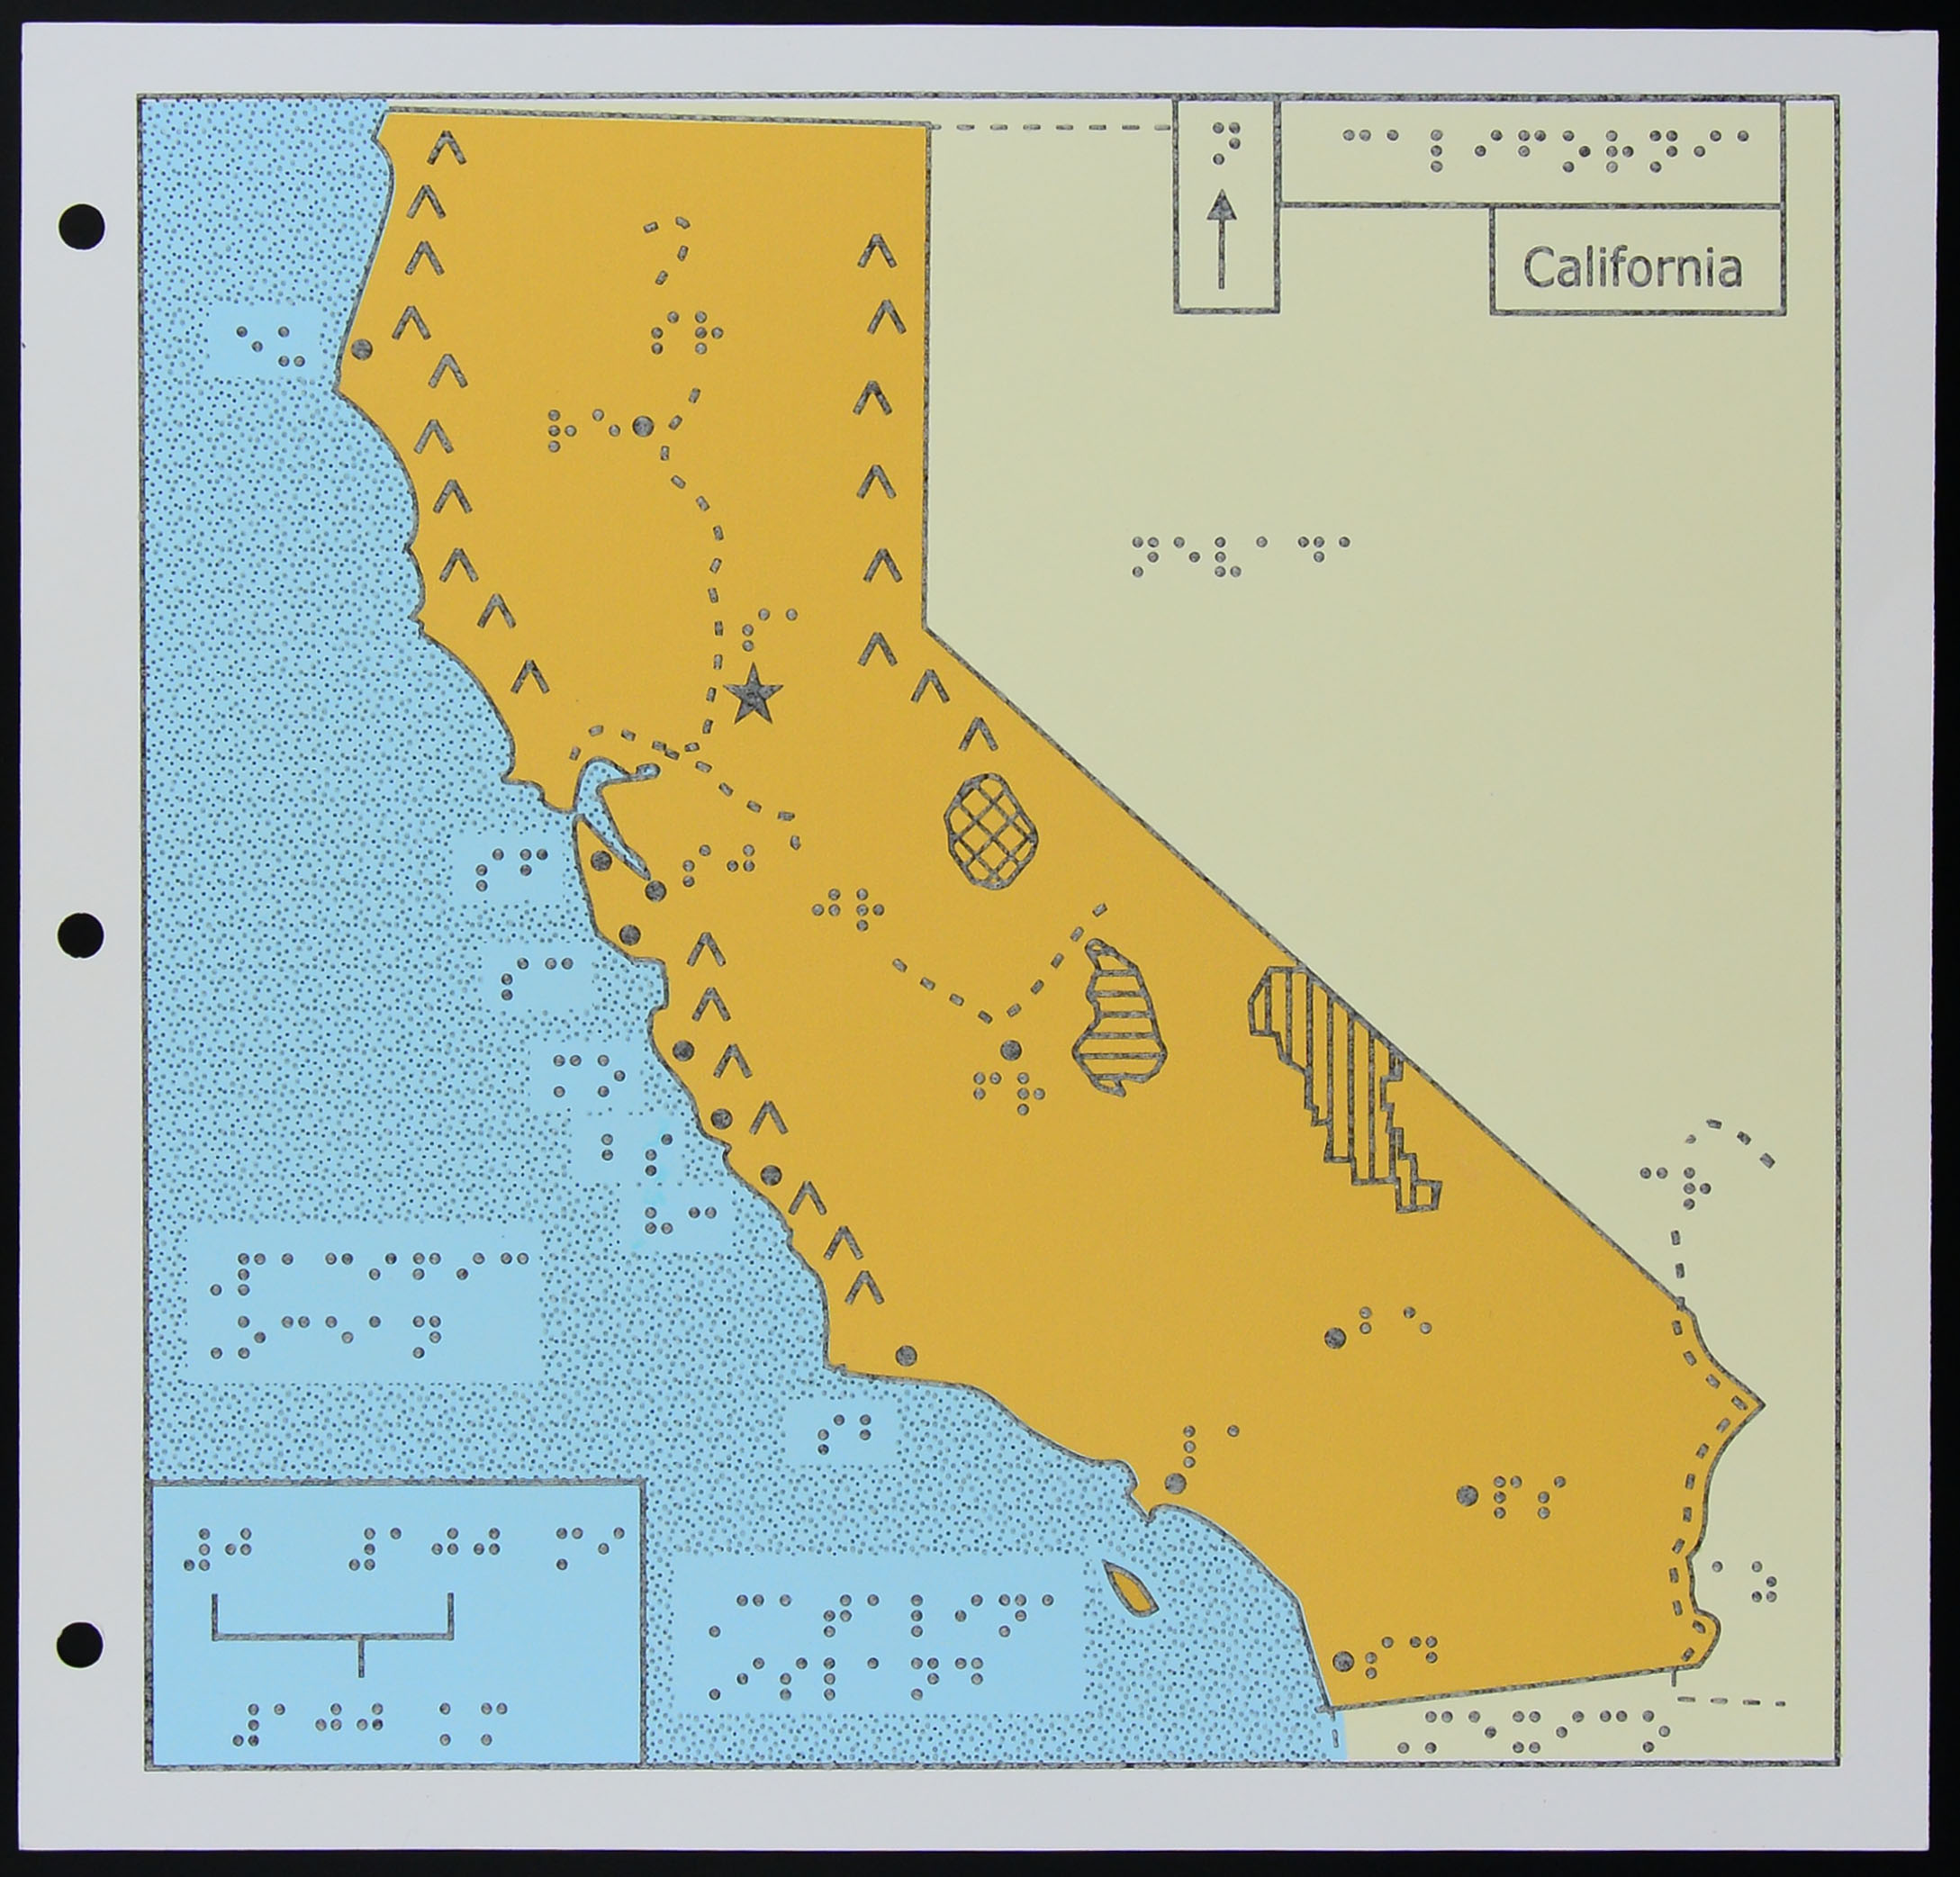 A Map Of California For The Blind KCET - Calfornia map